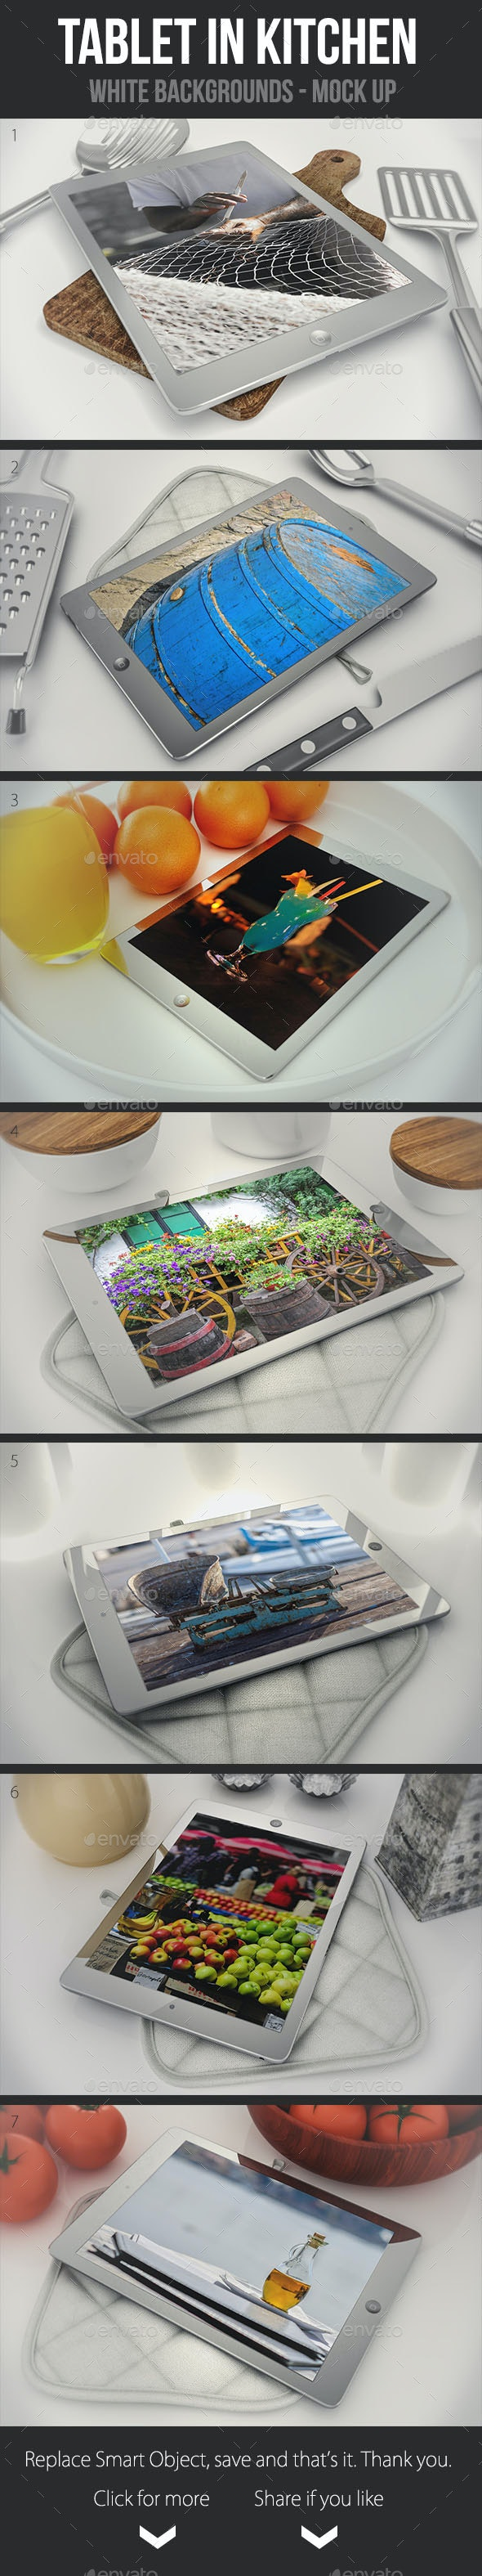 Tablets in The Kitchen - Mobile Displays